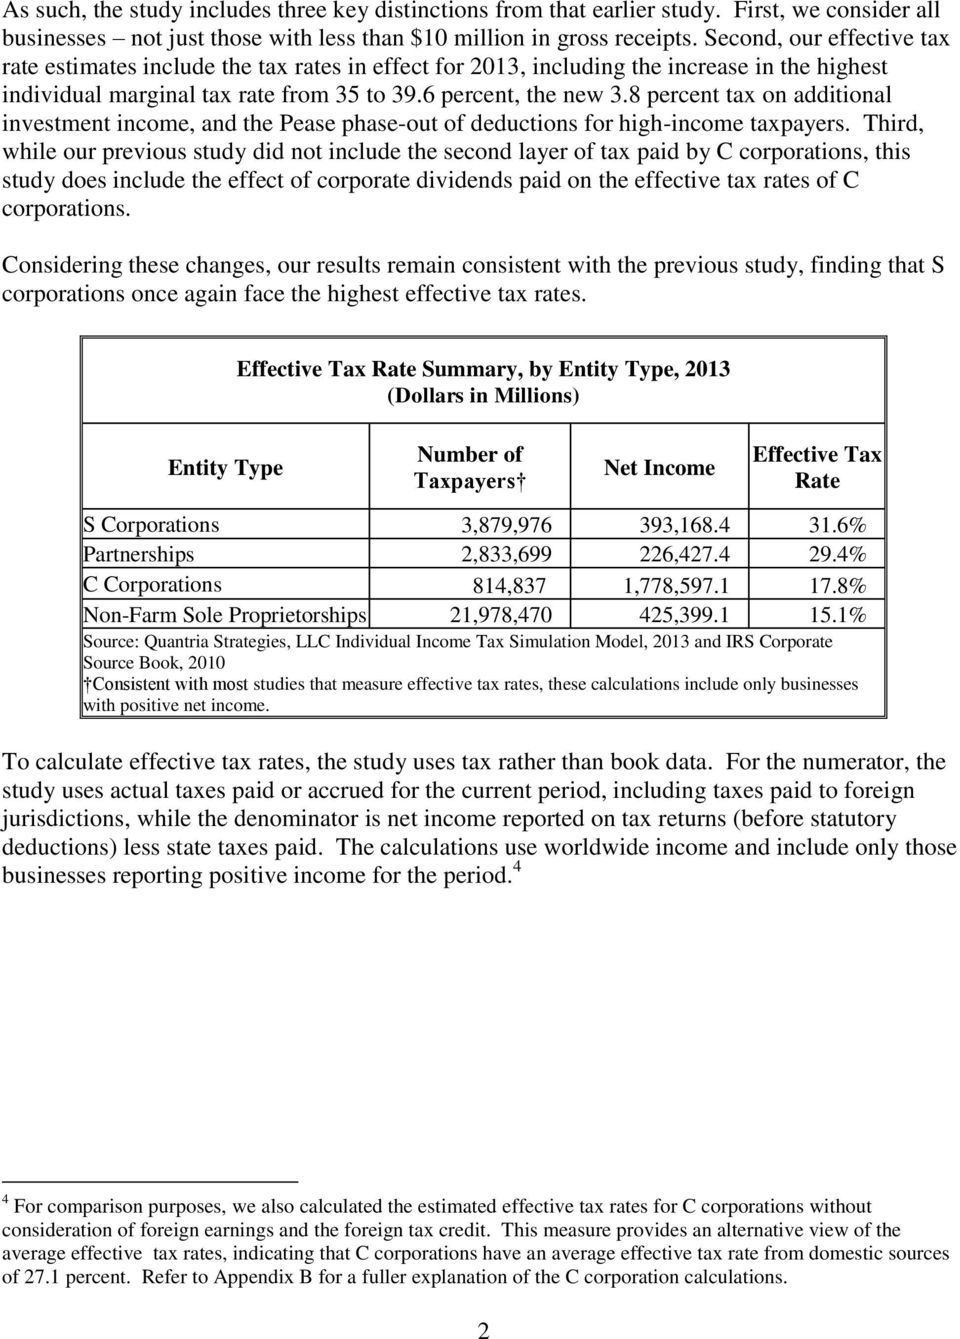 8 percent tax on additional investment income, and the Pease phase-out of deductions for high-income taxpayers.